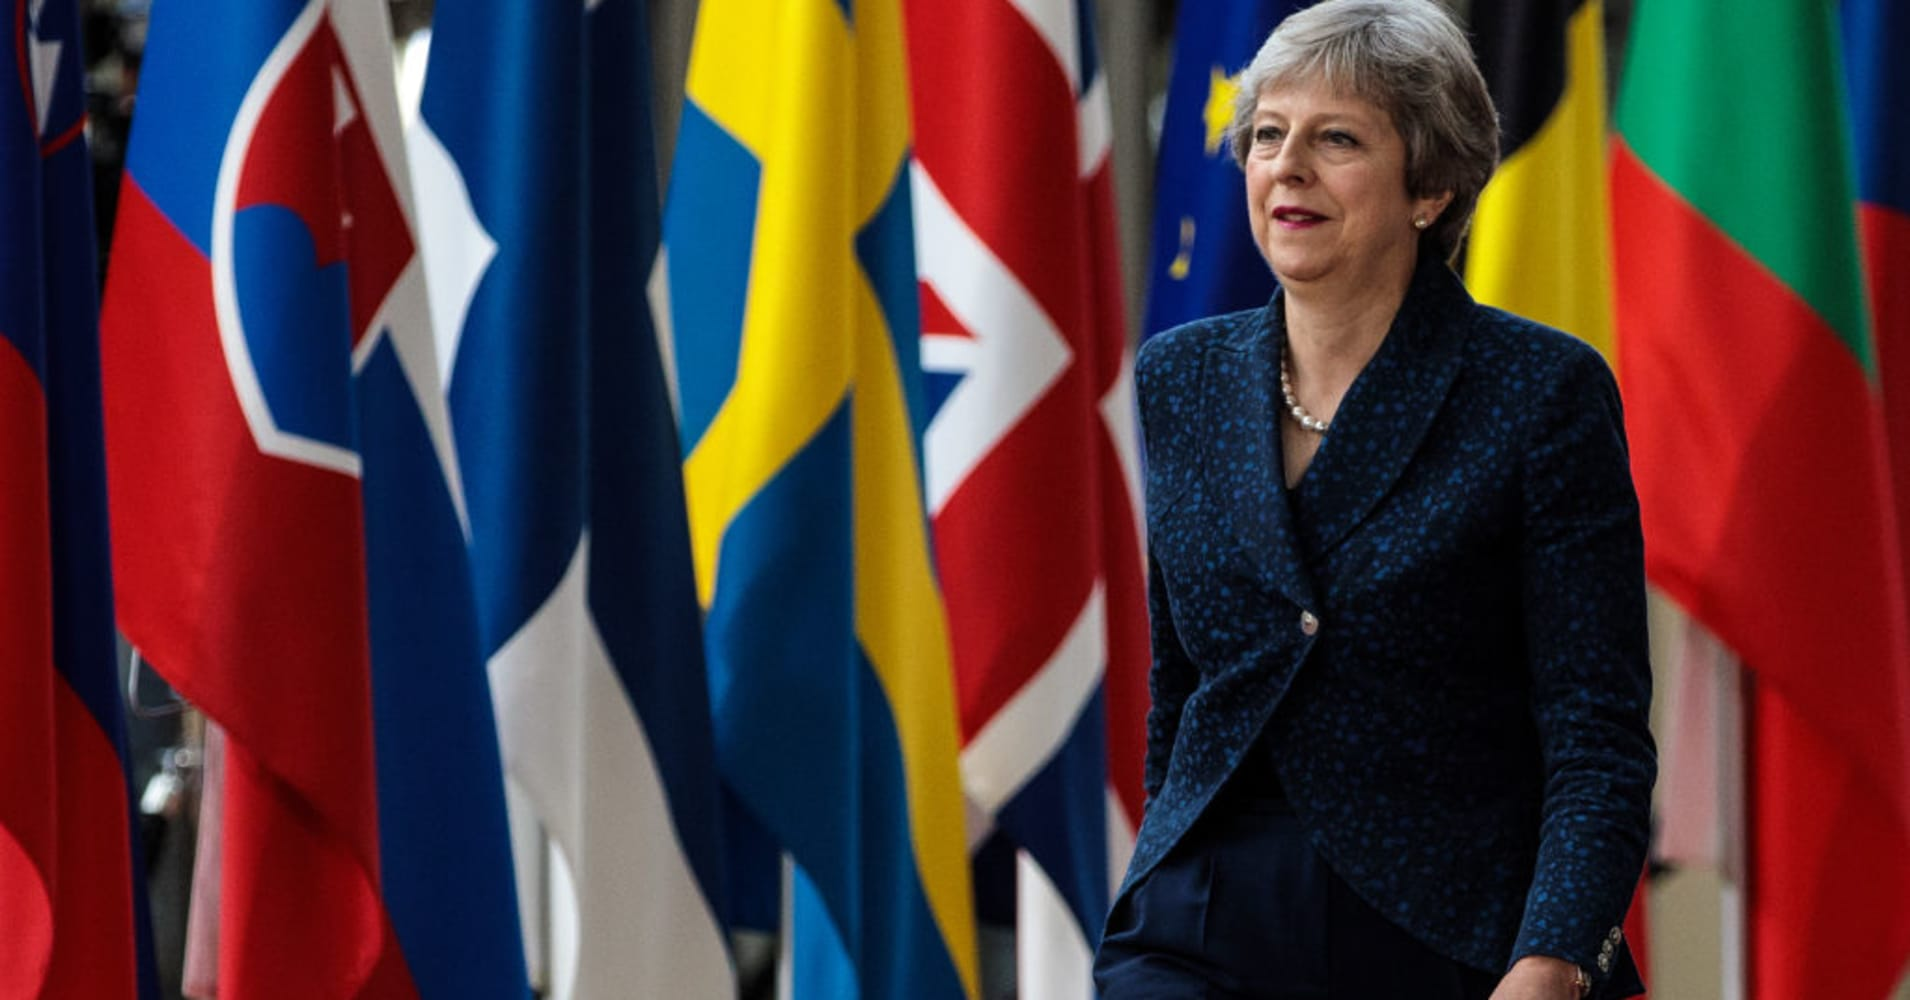 Under pressure to soften Brexit plans, Theresa May signals faster pace